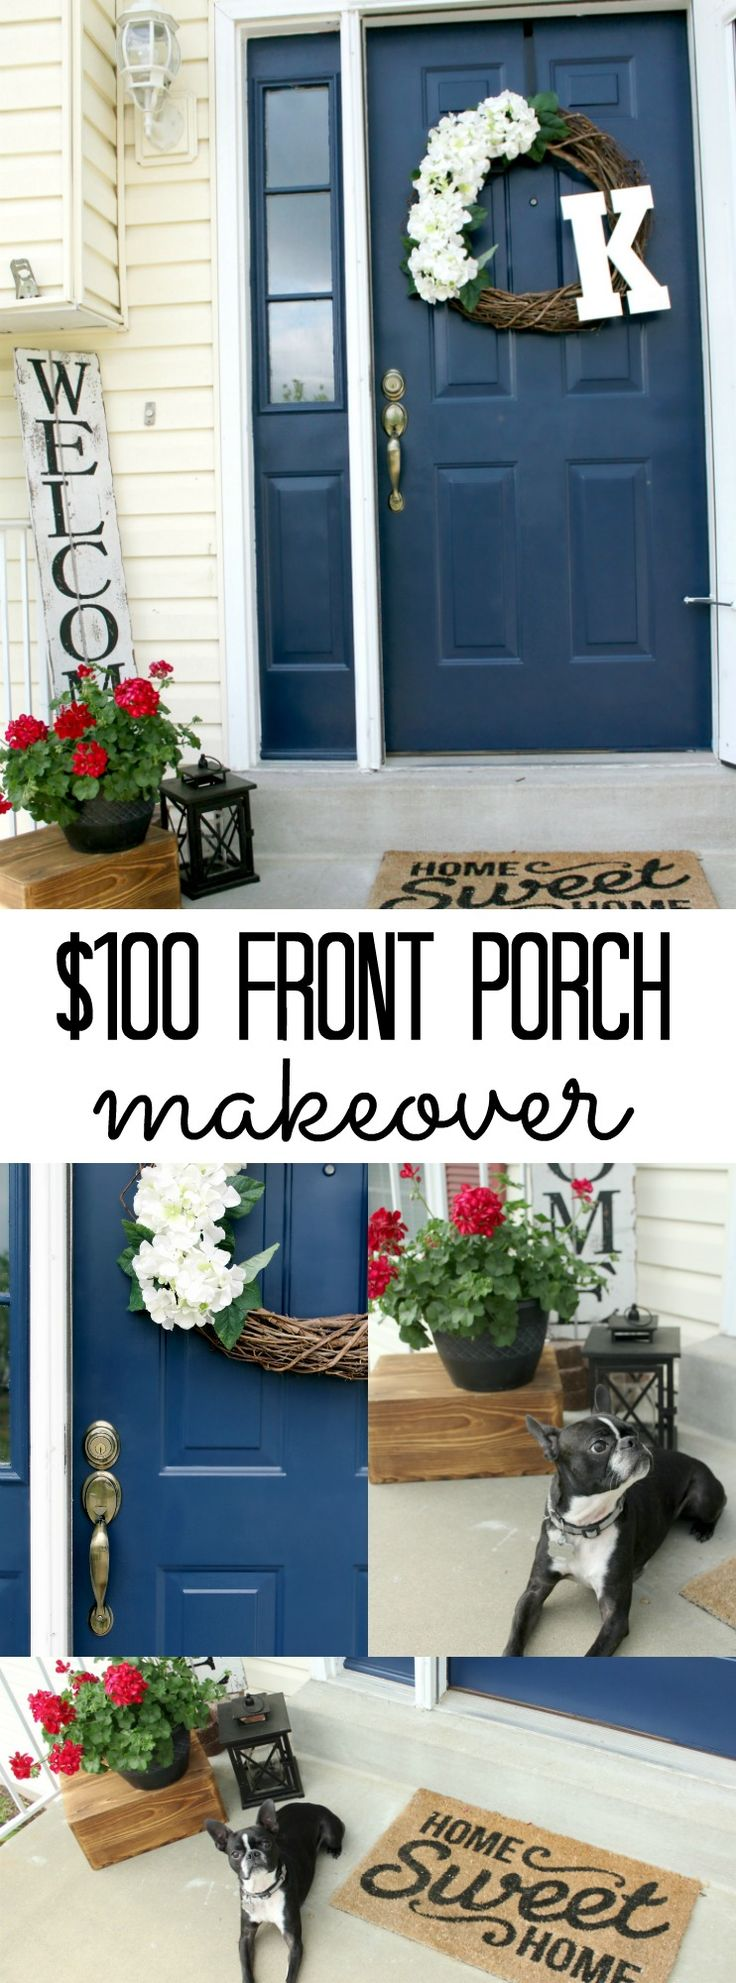 25 best ideas about porch makeover on pinterest front for Front porch makeover ideas